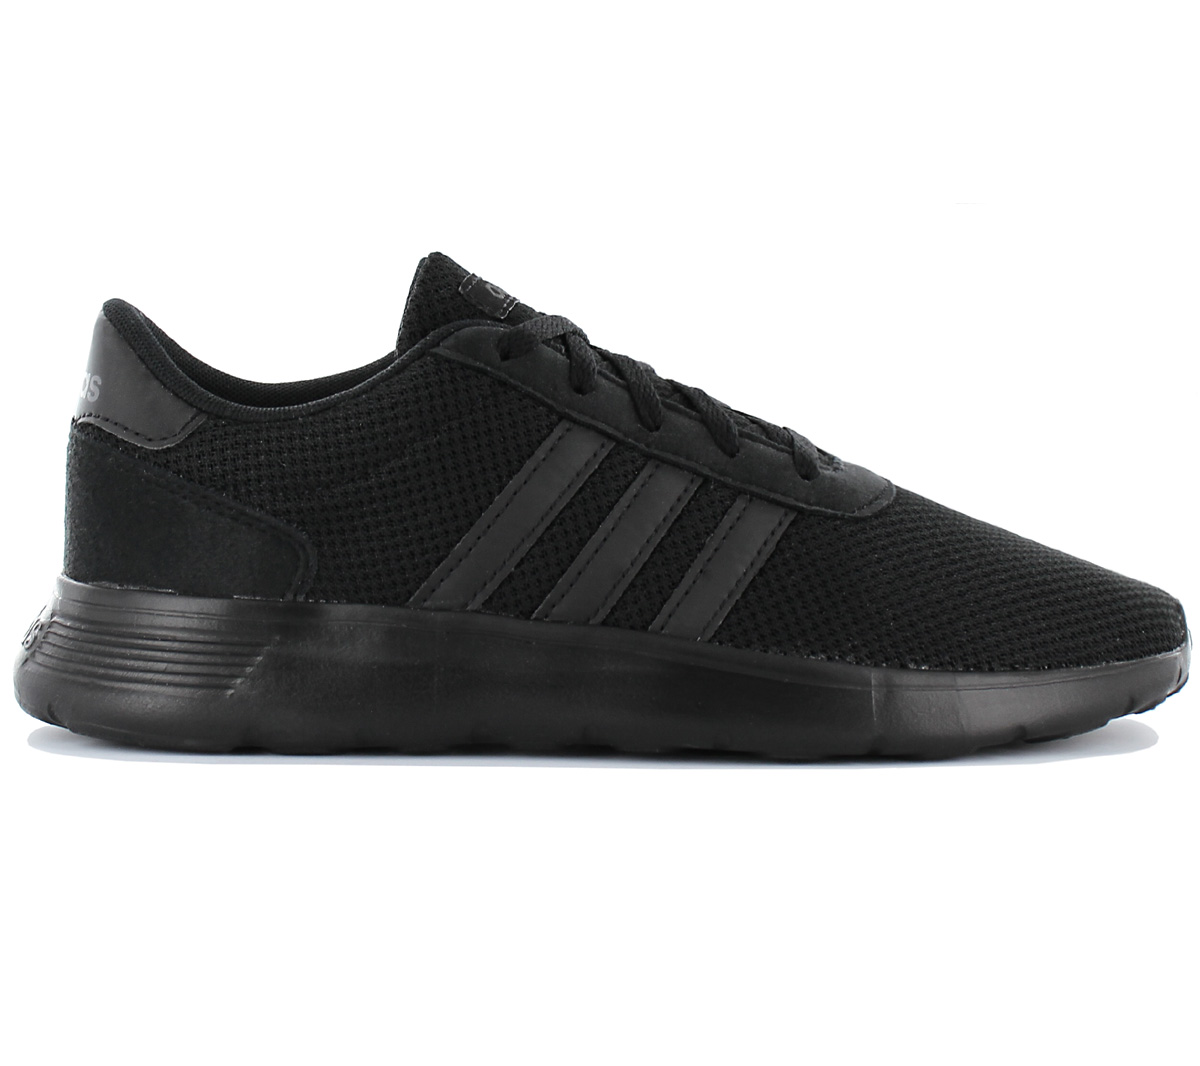 Adidas Ultimate Ladies Trainers Shoes Lite Racer Climacool Cloudfoam Ultimate Adidas aba952